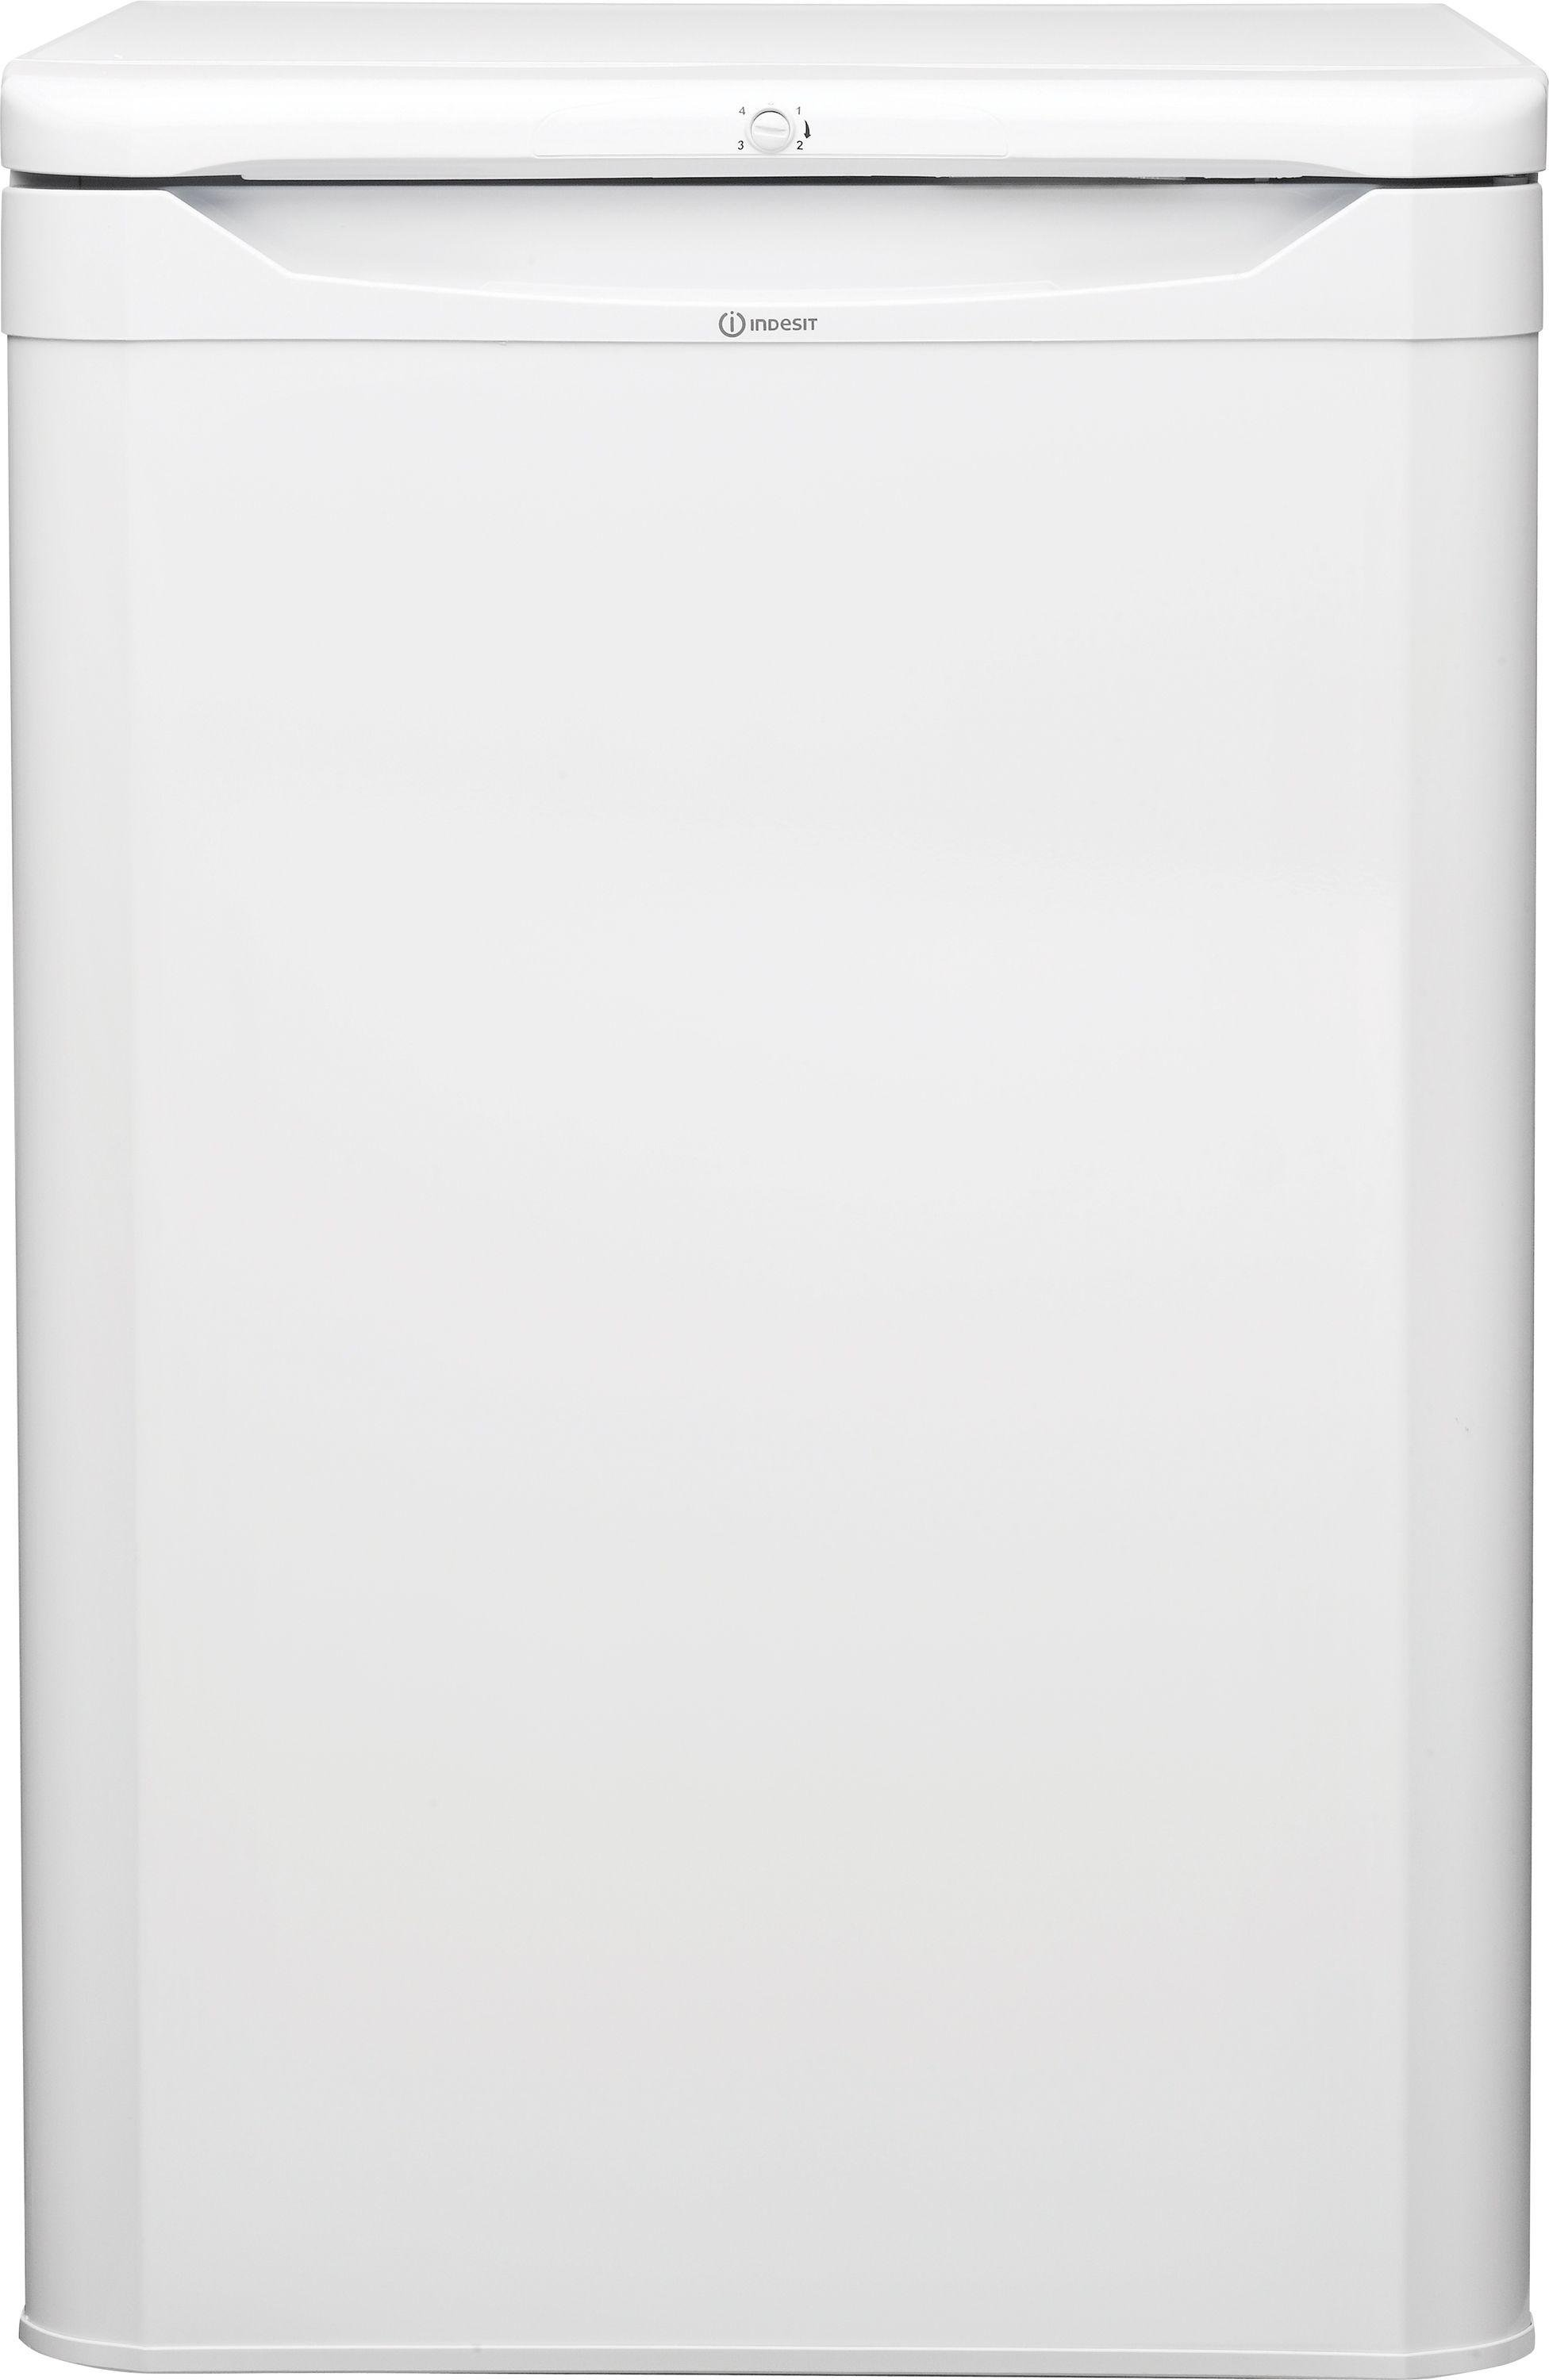 Indesit - TZAA 10 1 - Freestanding - Freezer - White + Installation